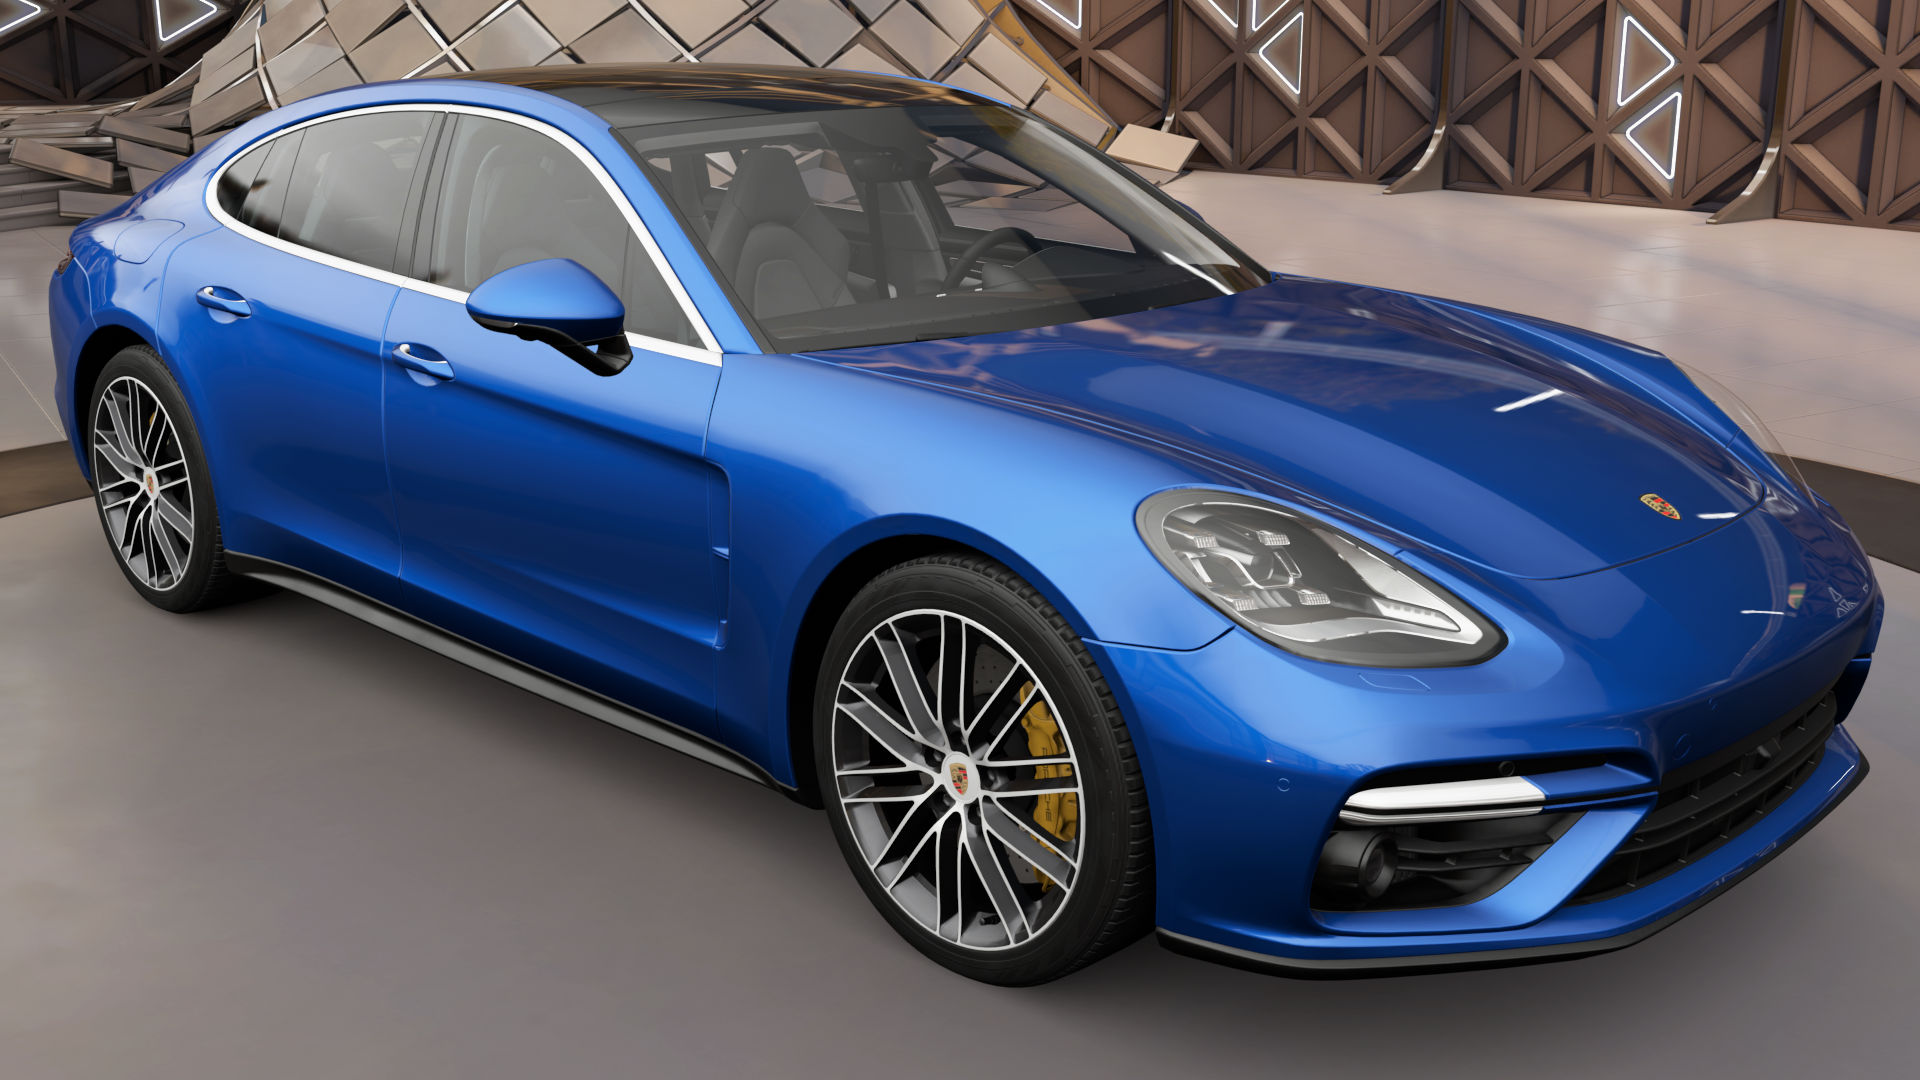 The 2017 Porsche Panamera Turbo In Forza Horizon 3